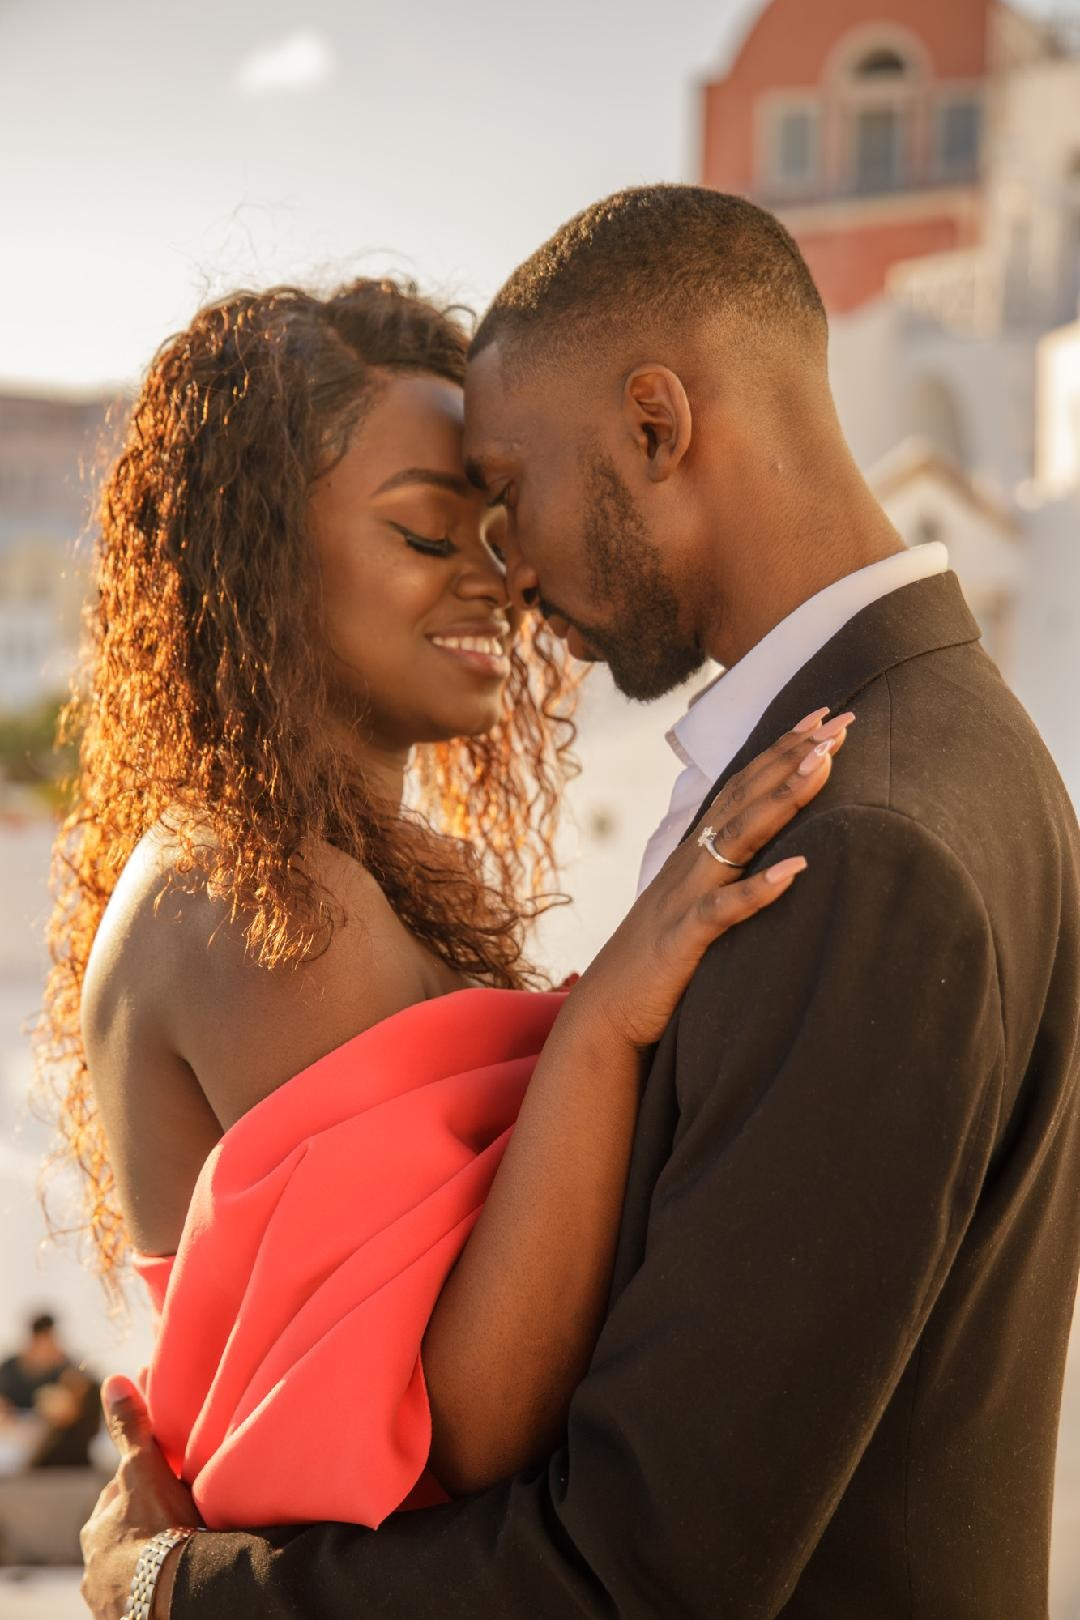 Adetumi and Lulu's Destination Proposal in Santori Greece - Black L:ove Couple